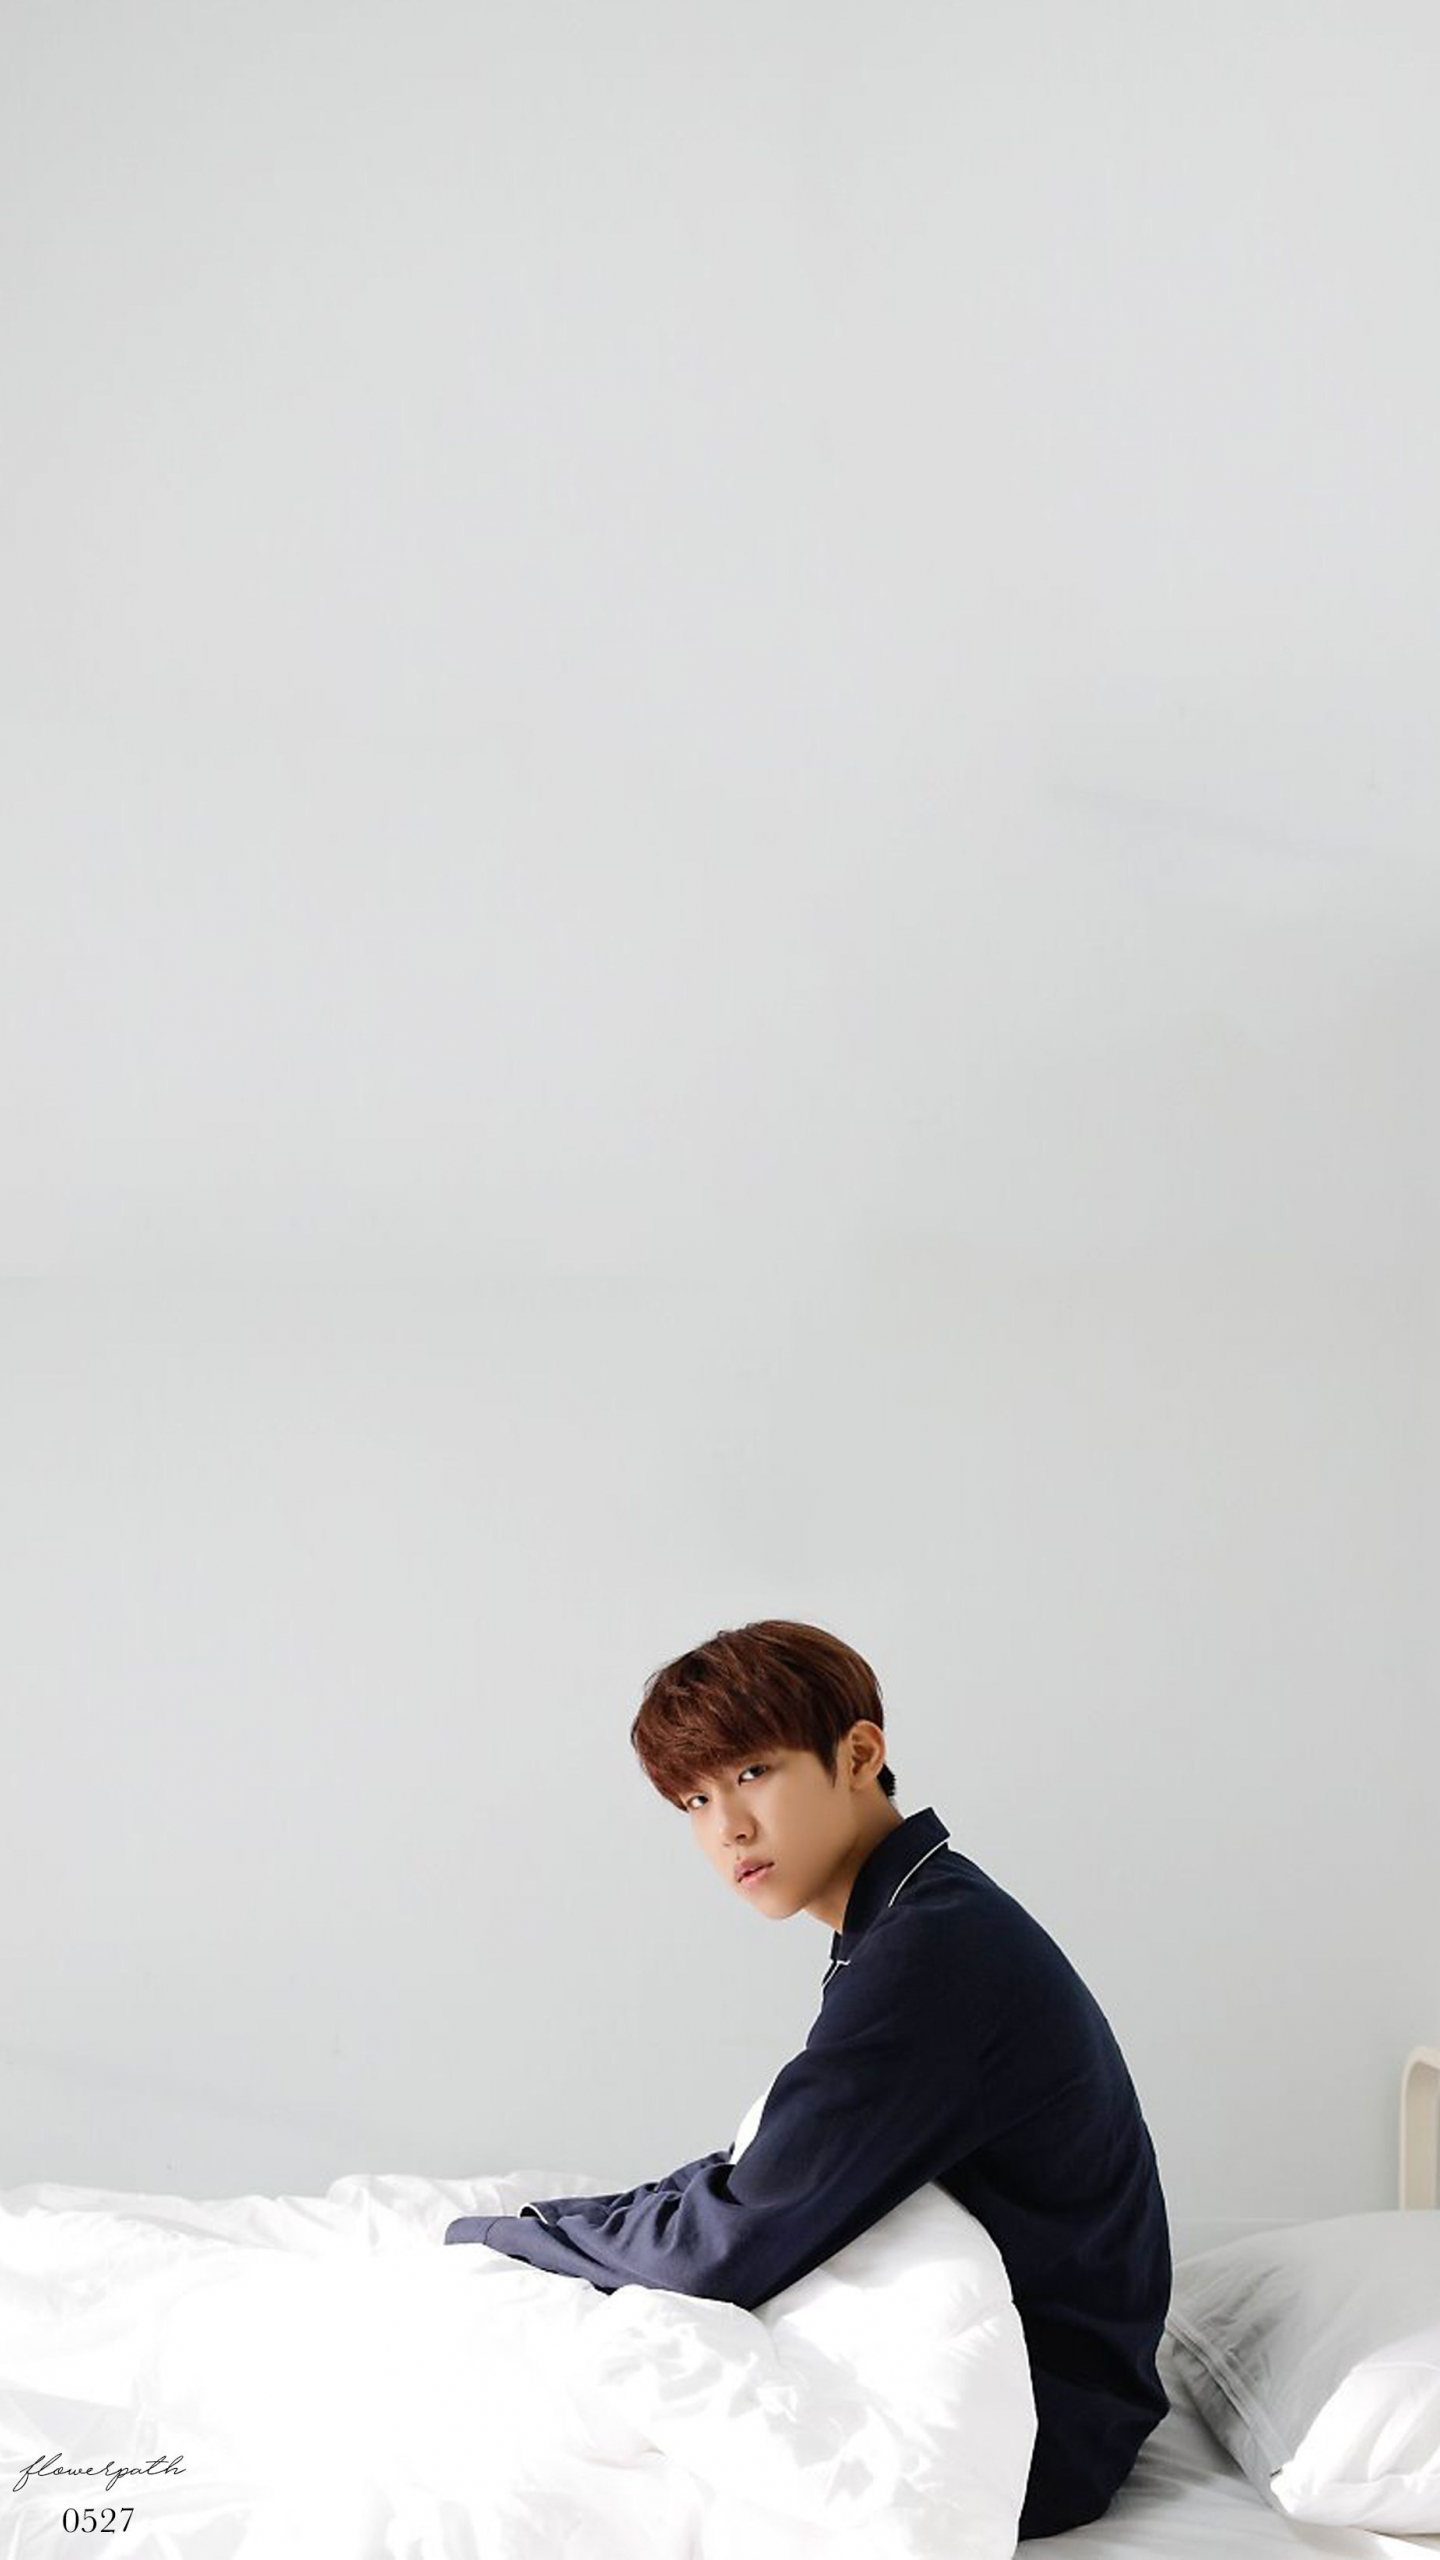 Free Download Wanna One Park Woojin Wallpaper Twn 1879x3284 For Your Desktop Mobile Tablet Explore 20 Park Woo Jin Wallpapers Park Woo Jin Wallpapers Kim Jin Woo Wallpapers Park Jin Young Wallpapers